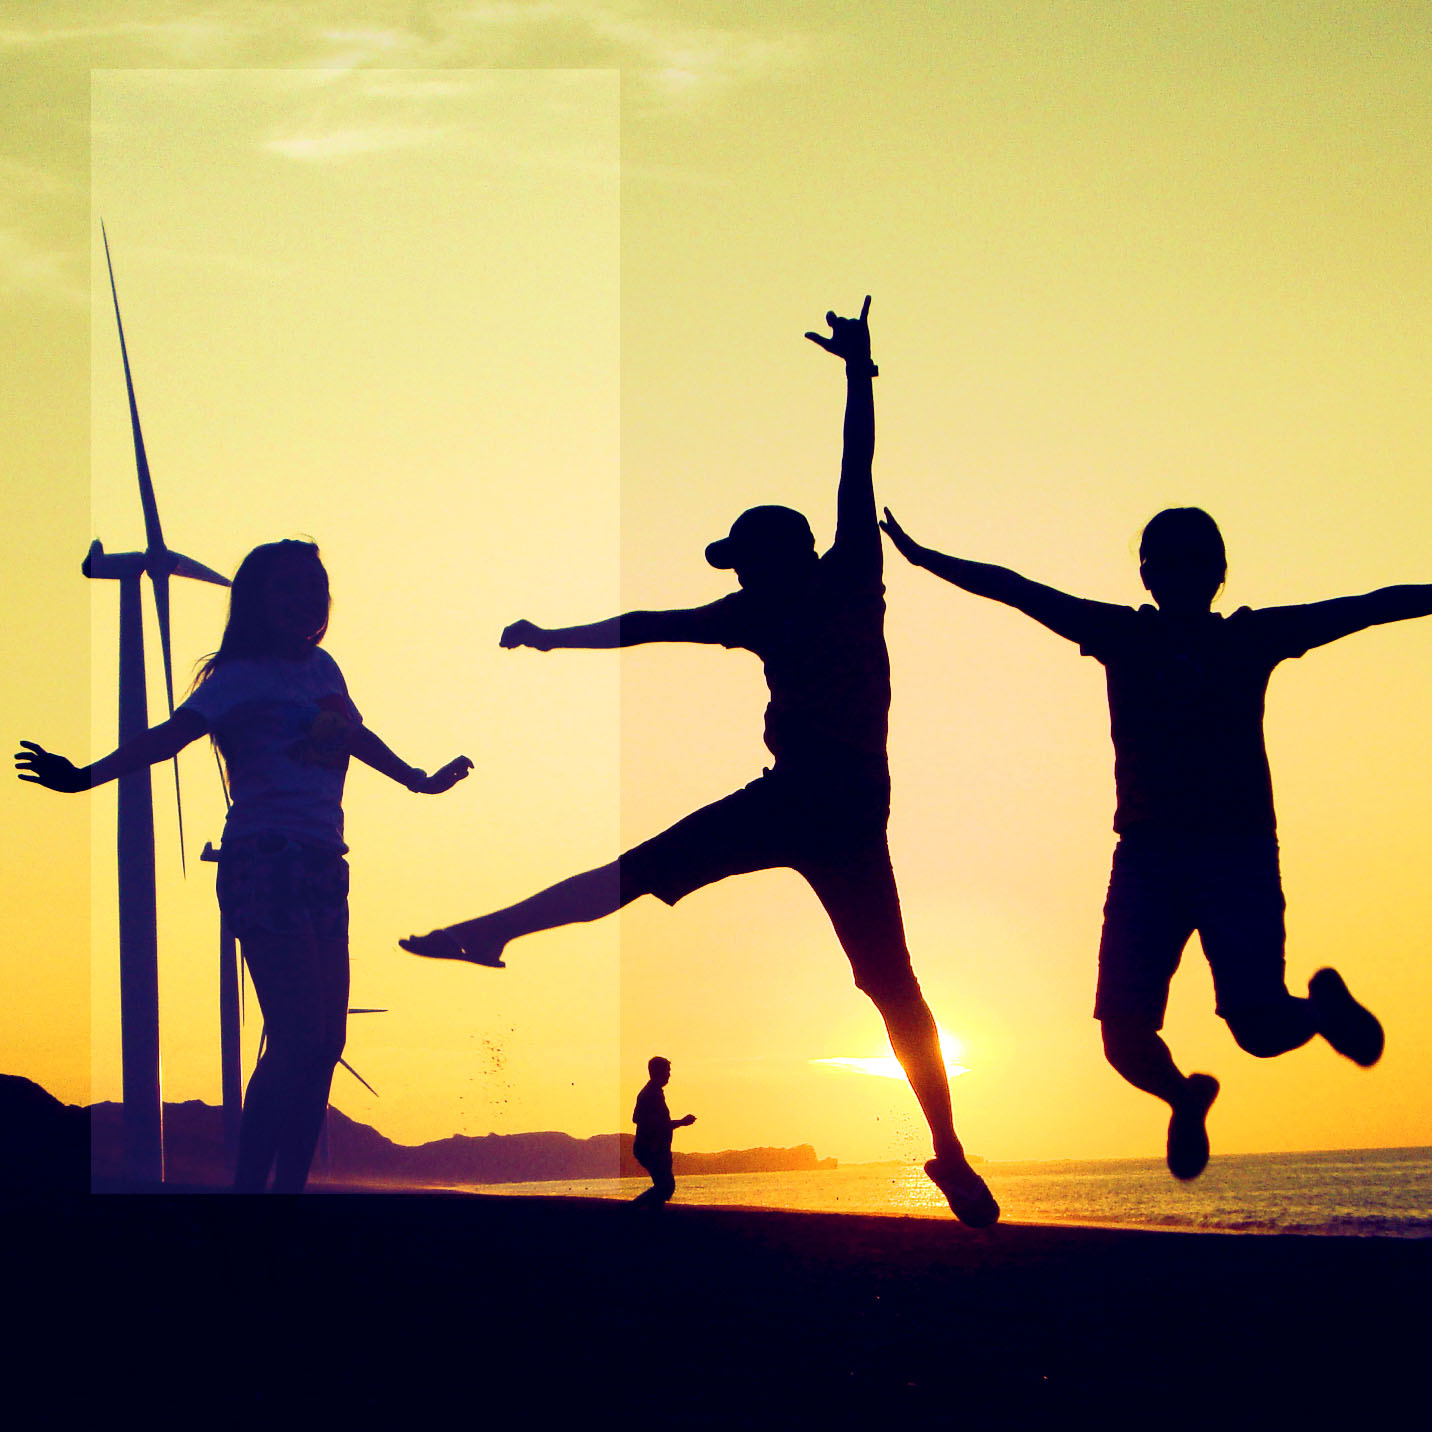 Afternoon sunset photo of Bangui windmills in Ilocos Norte